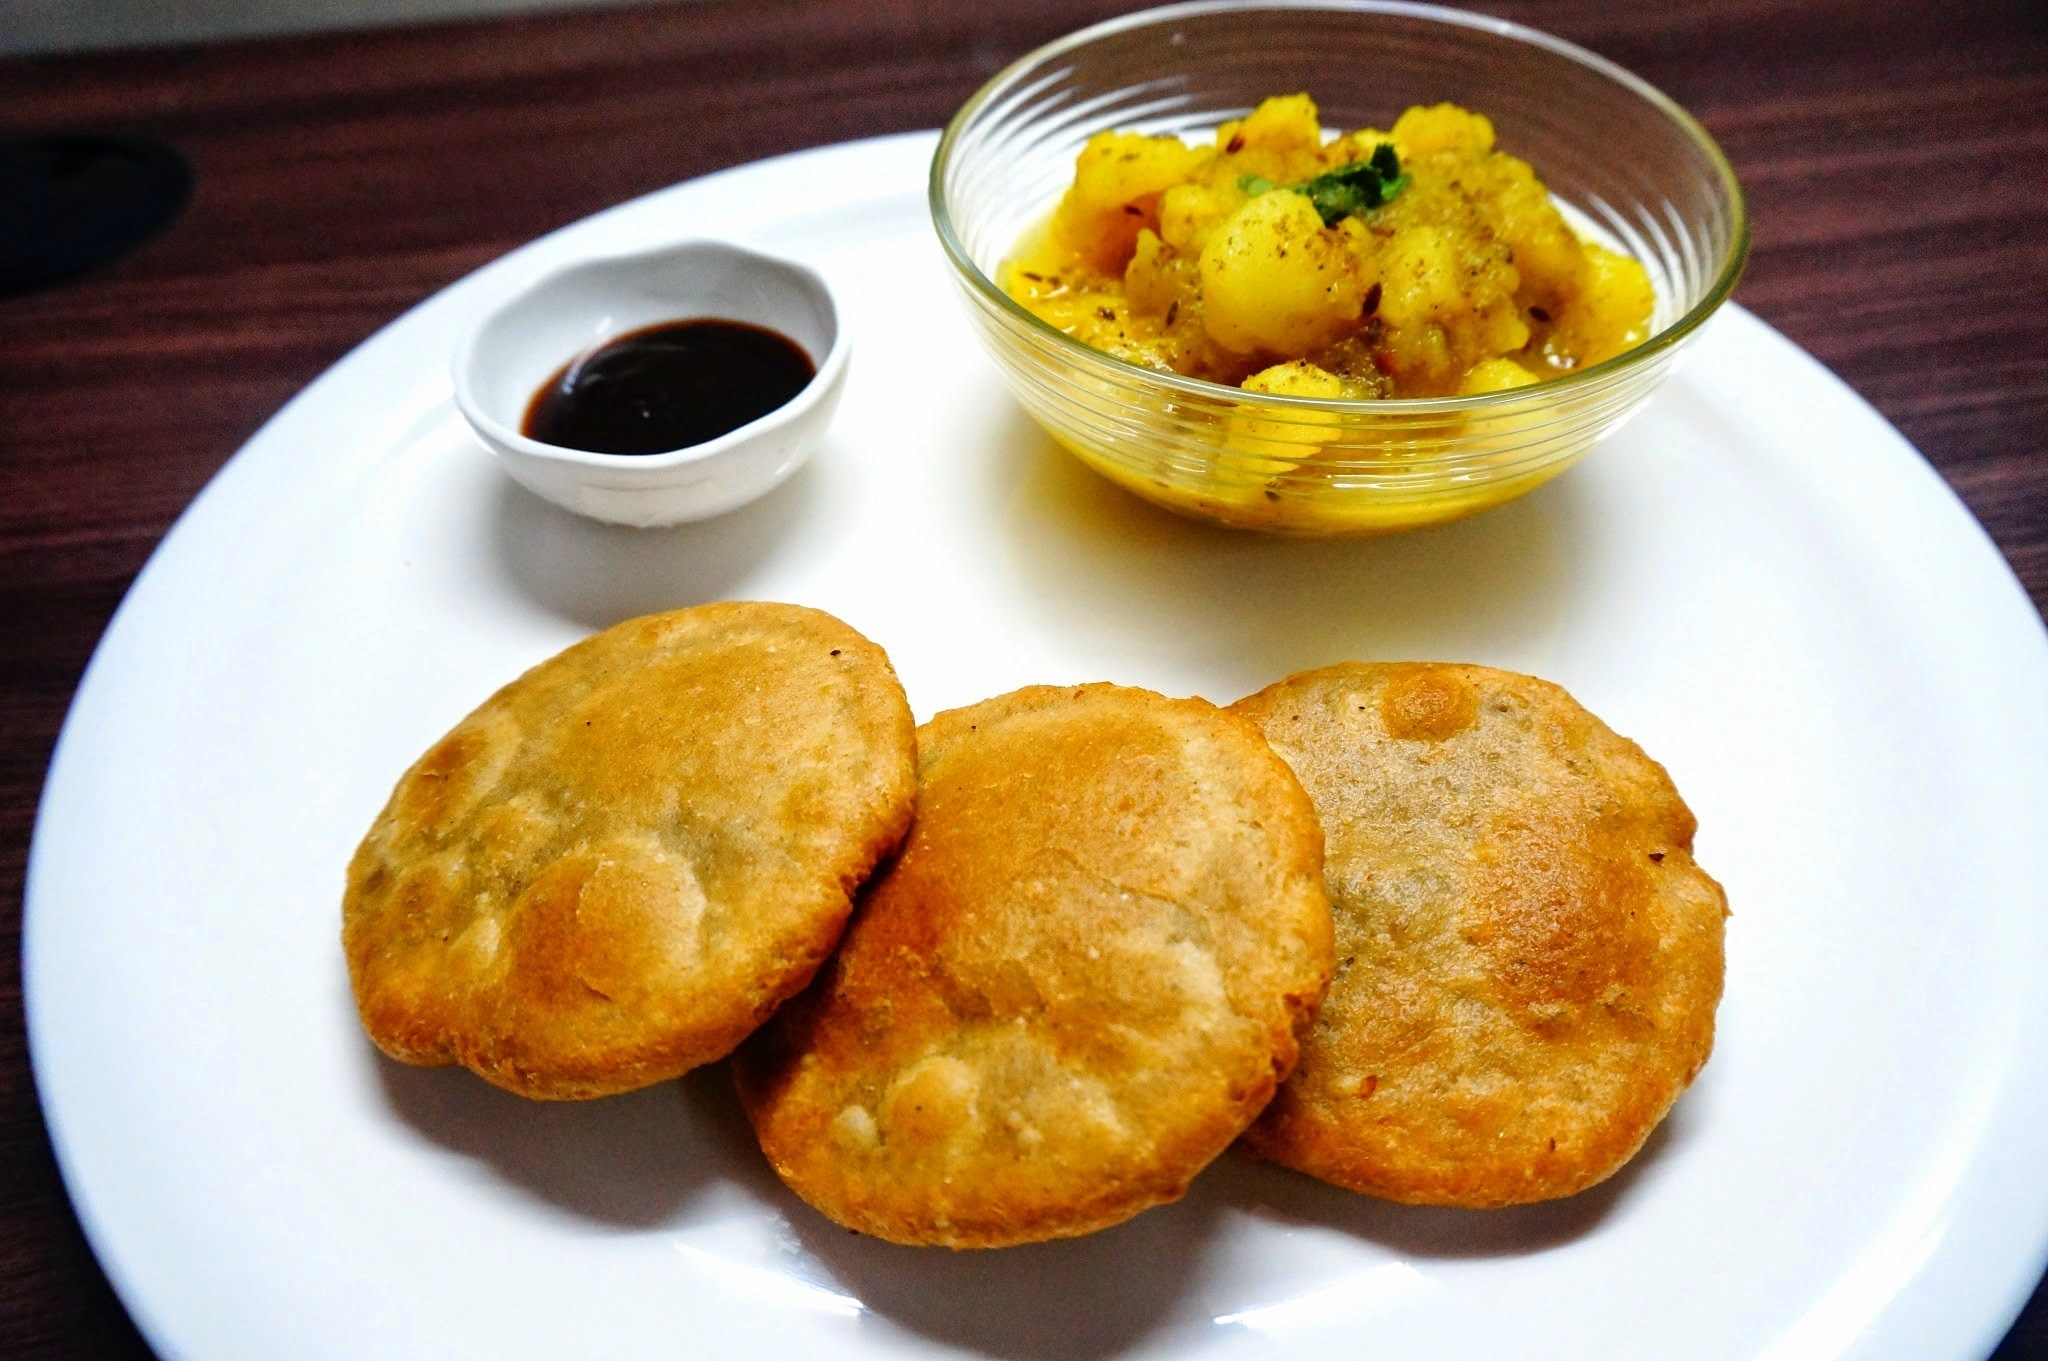 Whole wheat Khasta Kachori with aloo ki sabji